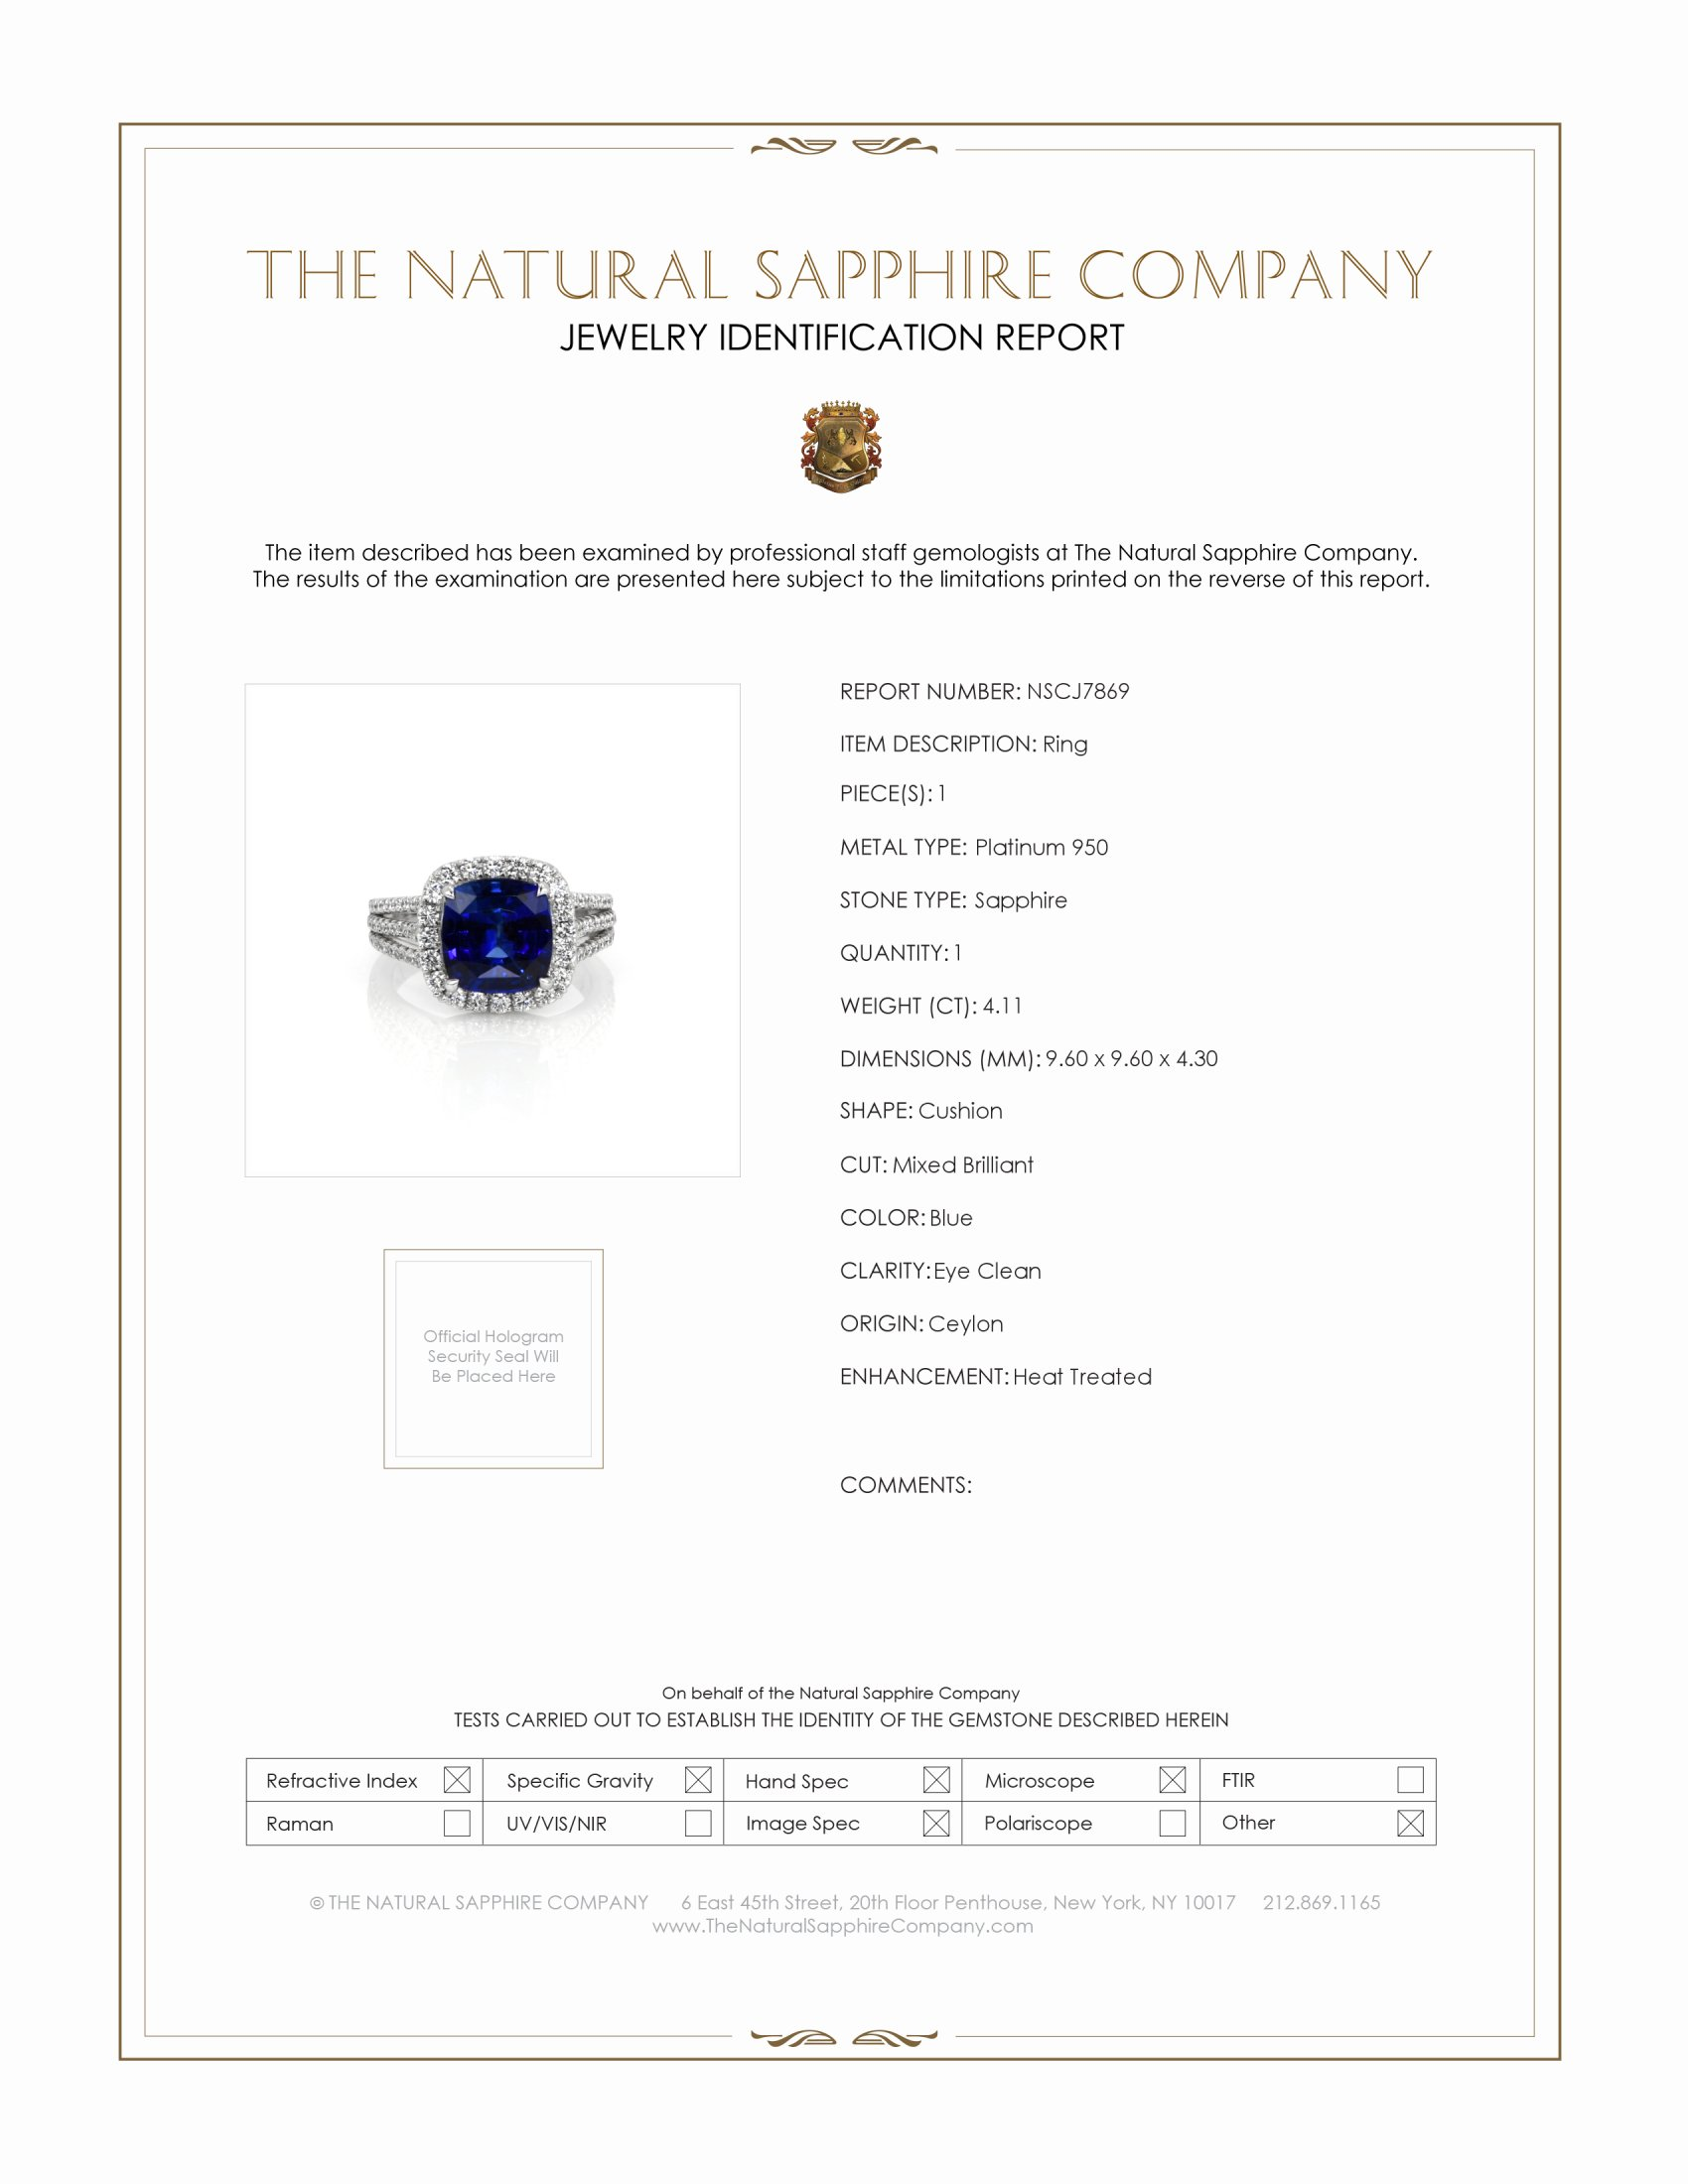 4.11ct Blue Sapphire Ring Certification